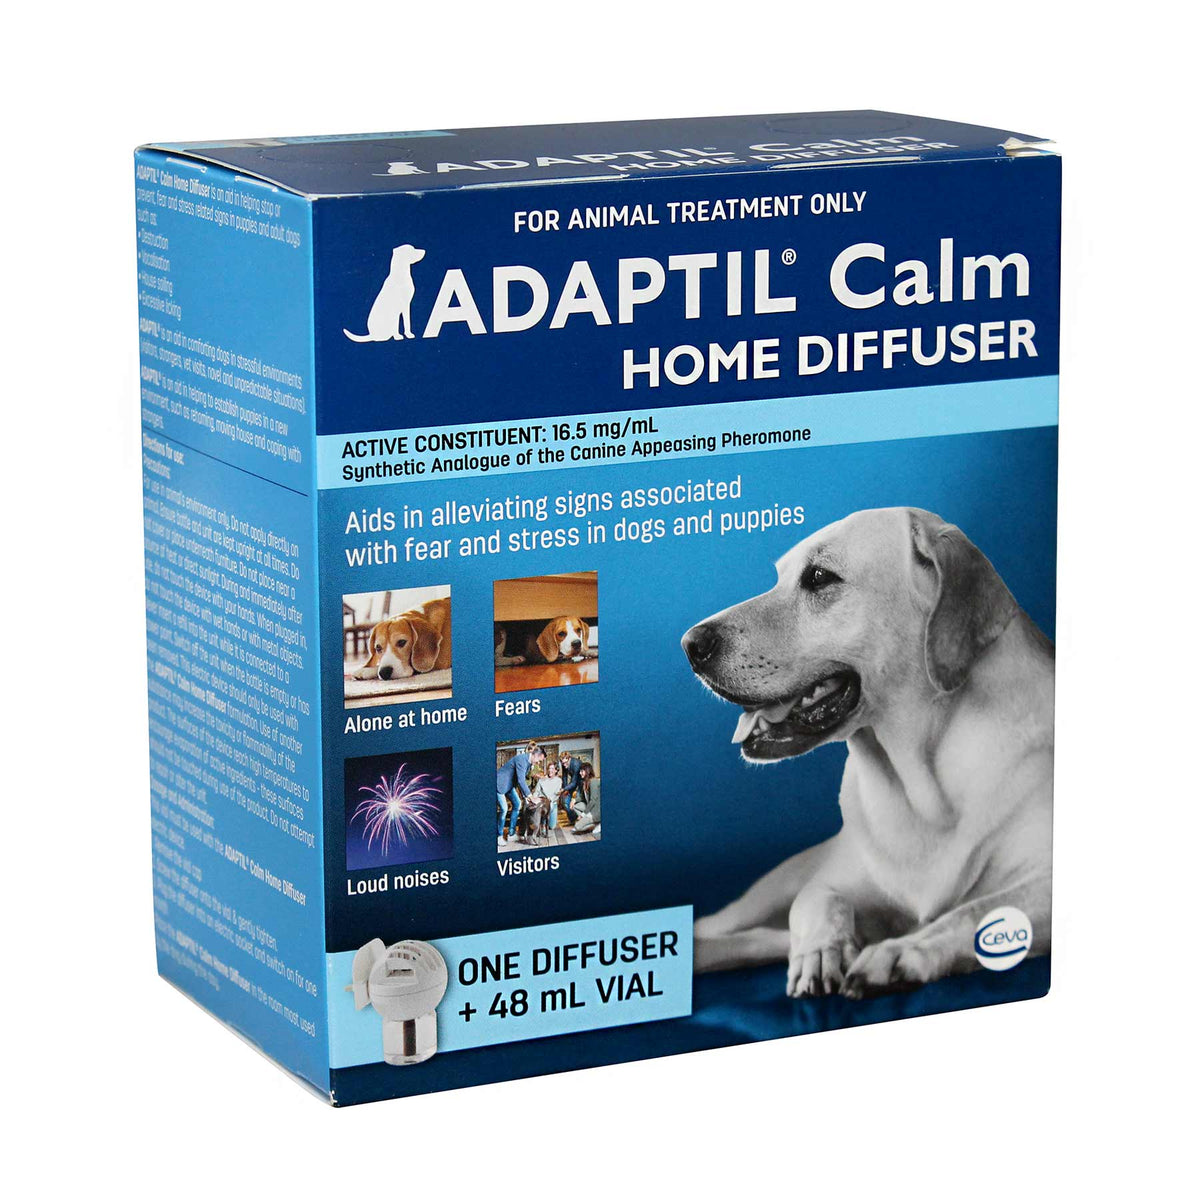 Adaptil Calm Home Diffuser Complete Kit for Dogs